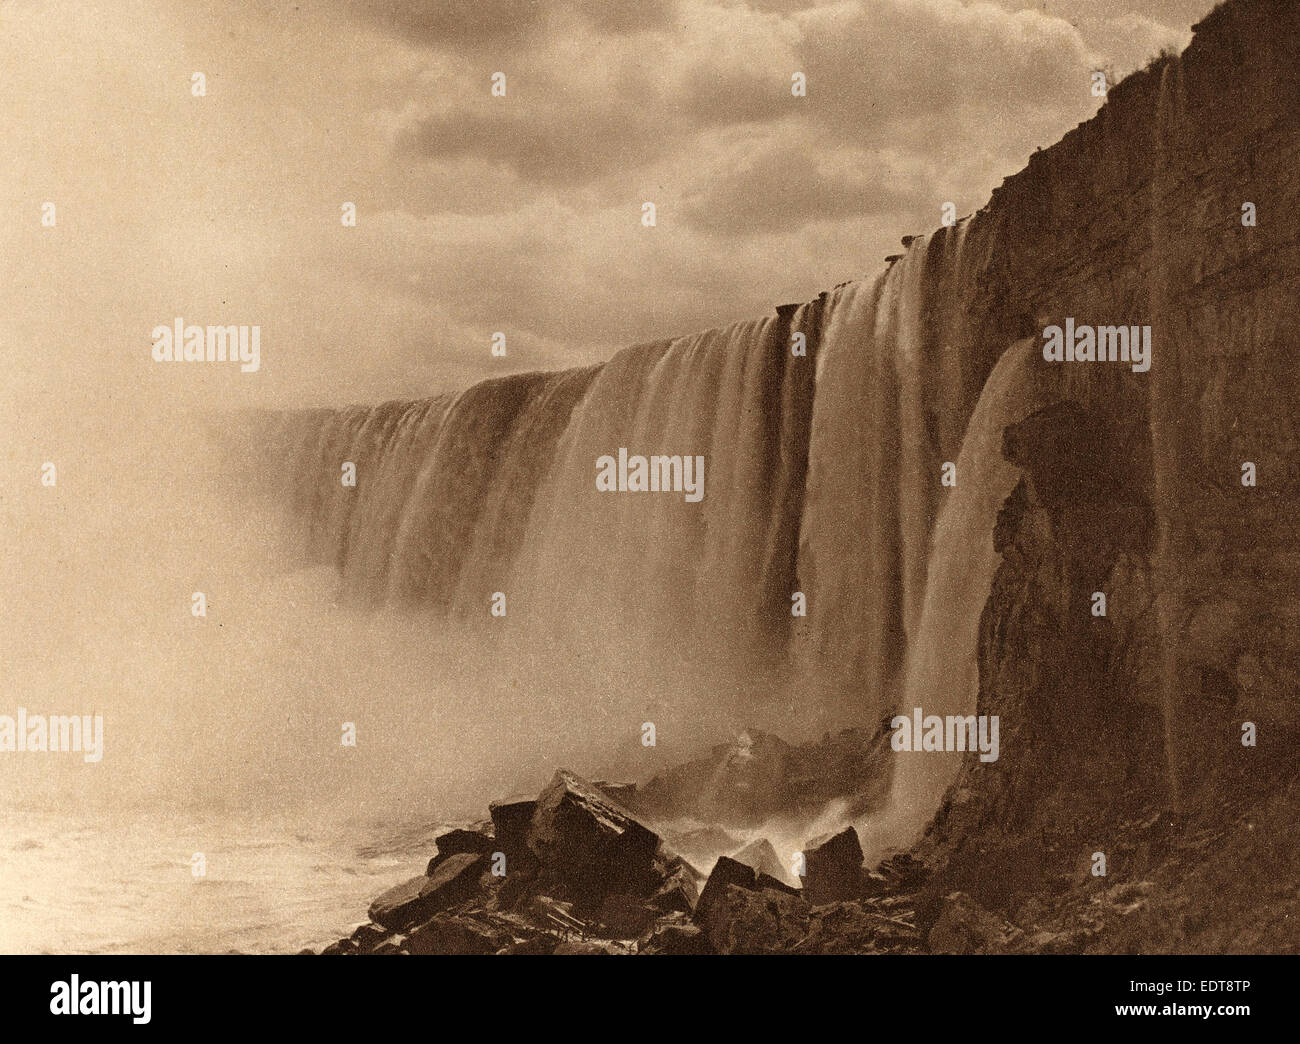 William D. Murphy (American, 1834 - 1932), Niagara Falls, 1899, photogravure in sepia on chine collé mounted - Stock Image